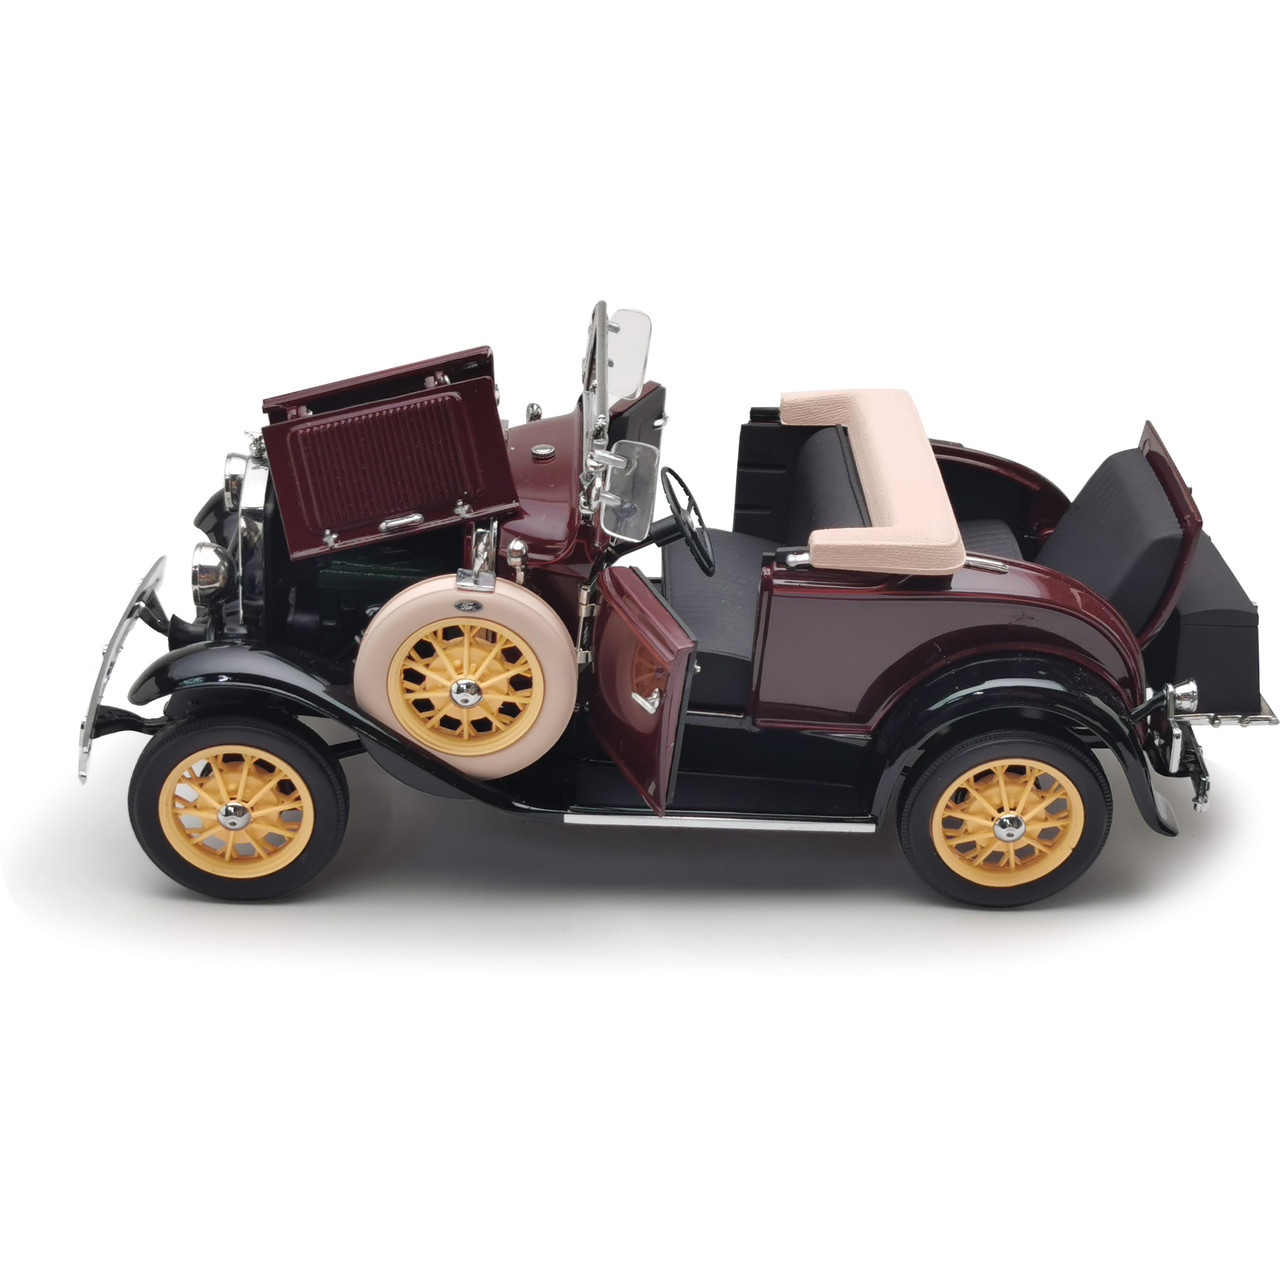 1931 Ford Model A Roadster Burgundy 1 18 Scale Diecast Model By Sunstar Collectable Diecast